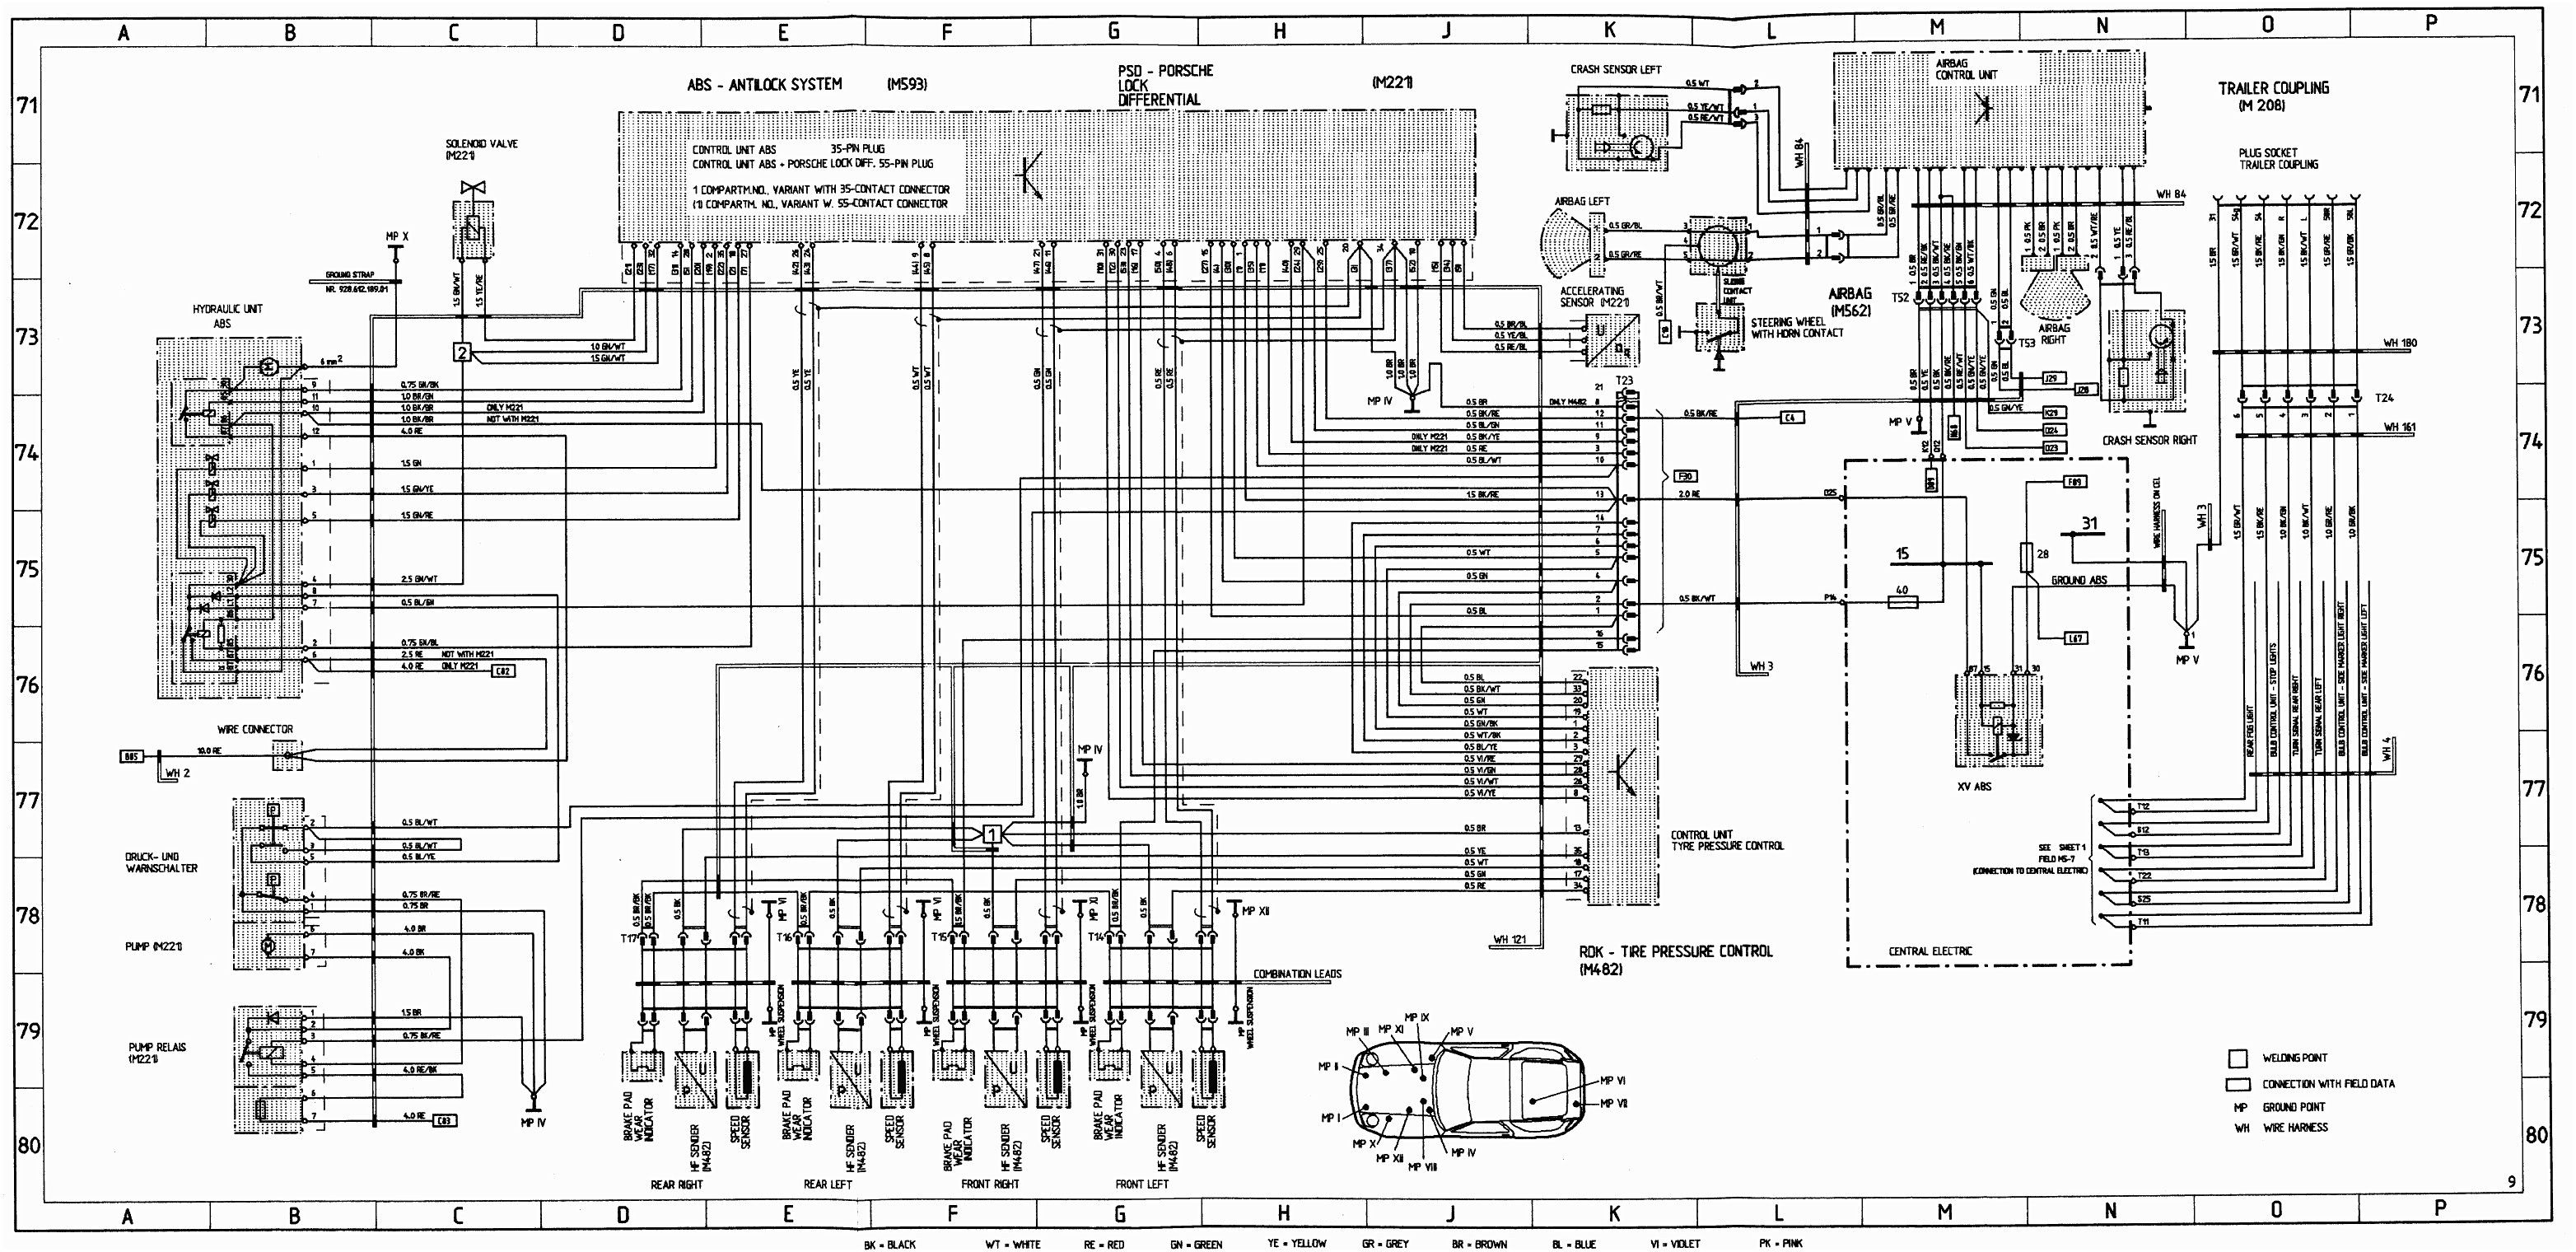 Bmw E46 Ignition Switch Wiring Diagram Diagram Diagramtemplate Diagramsample E36 M3 Bmw